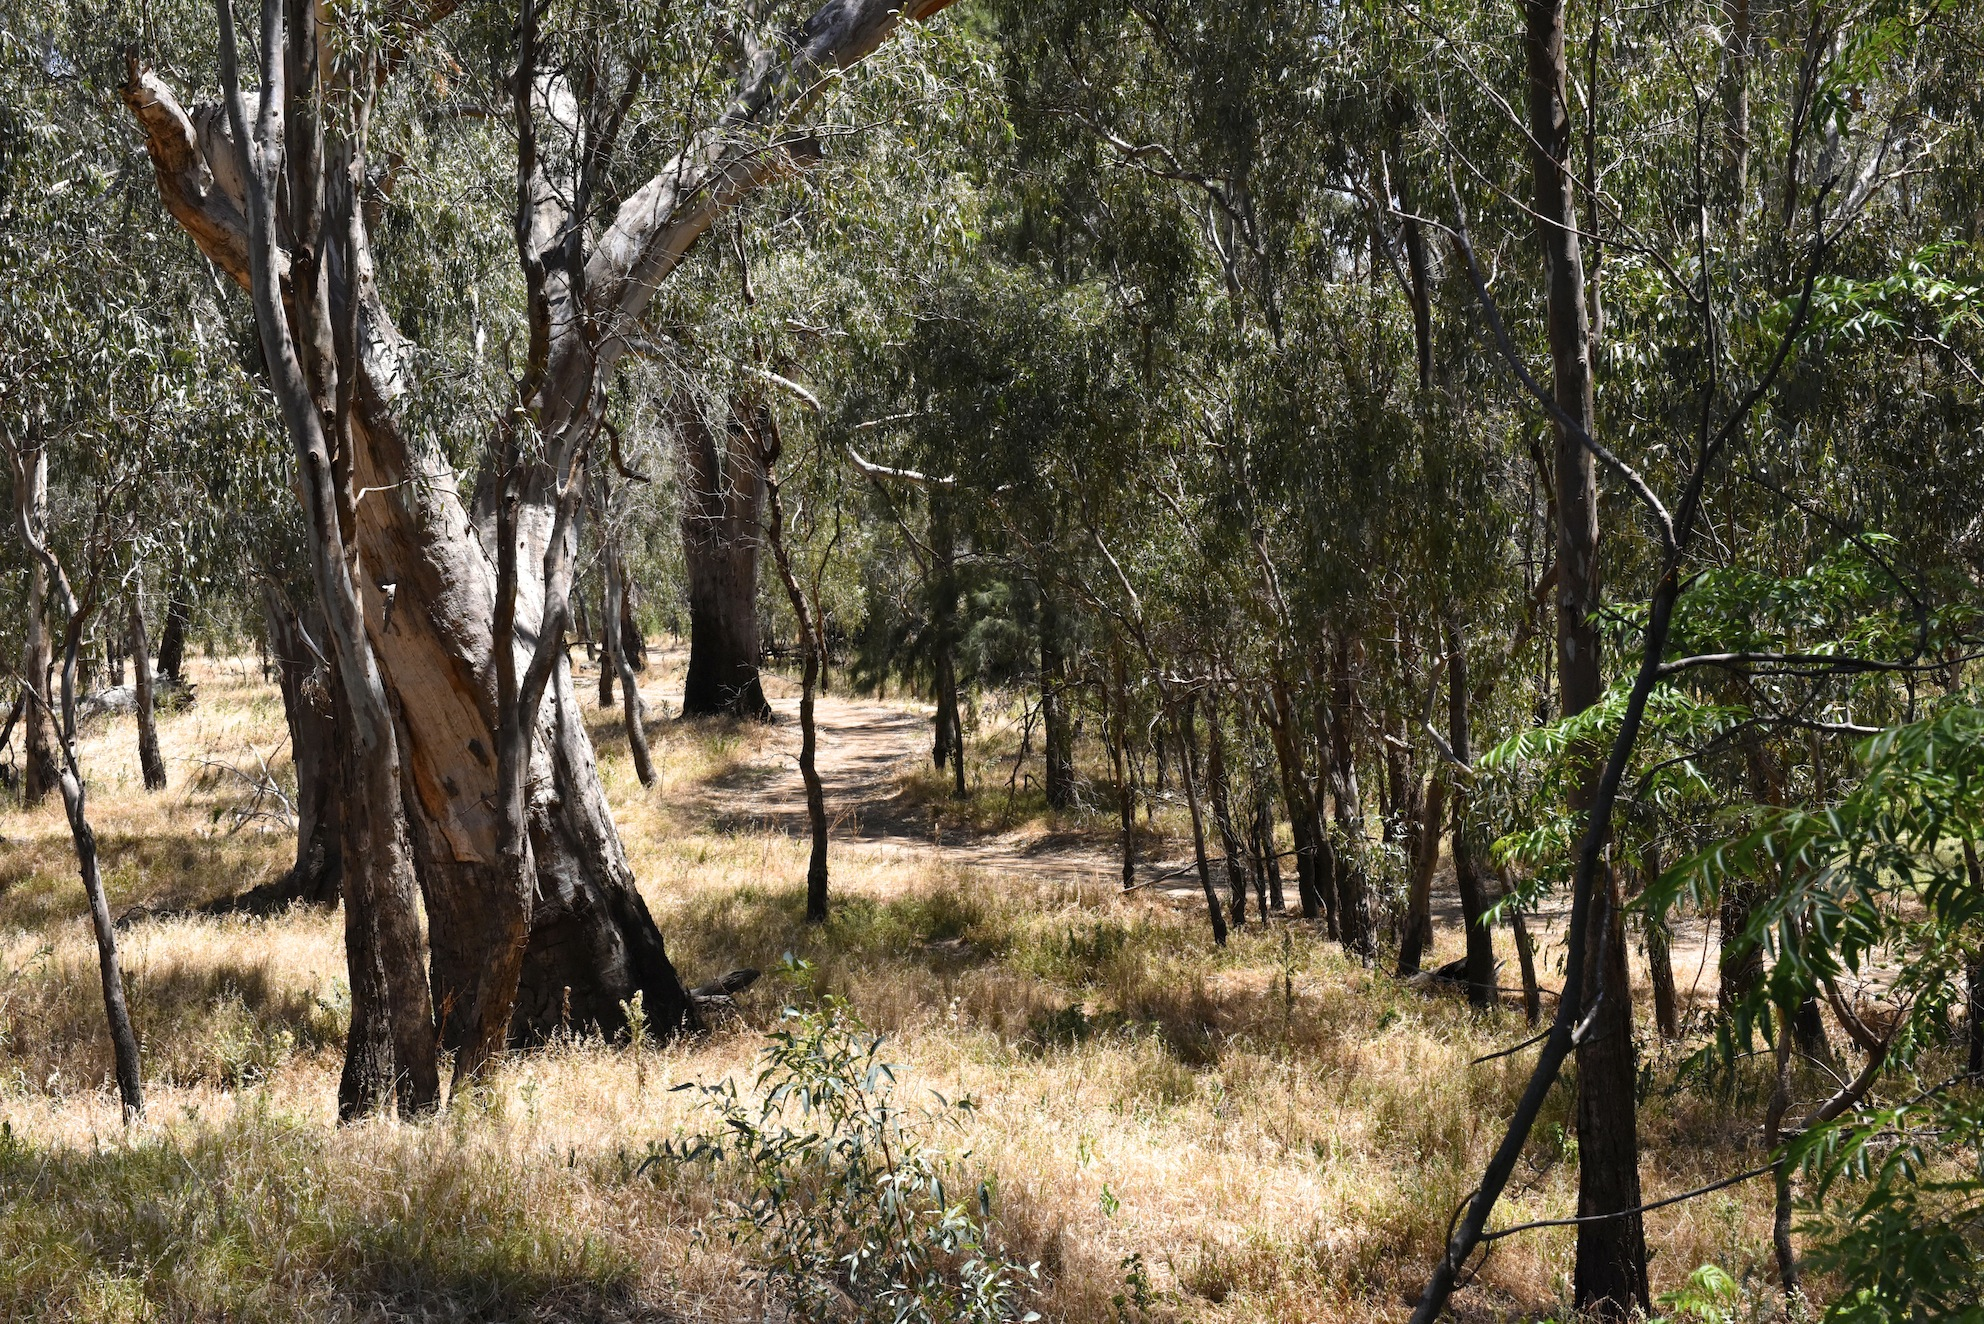 View of the walking track along the Murrumbidgee river from Tulluc